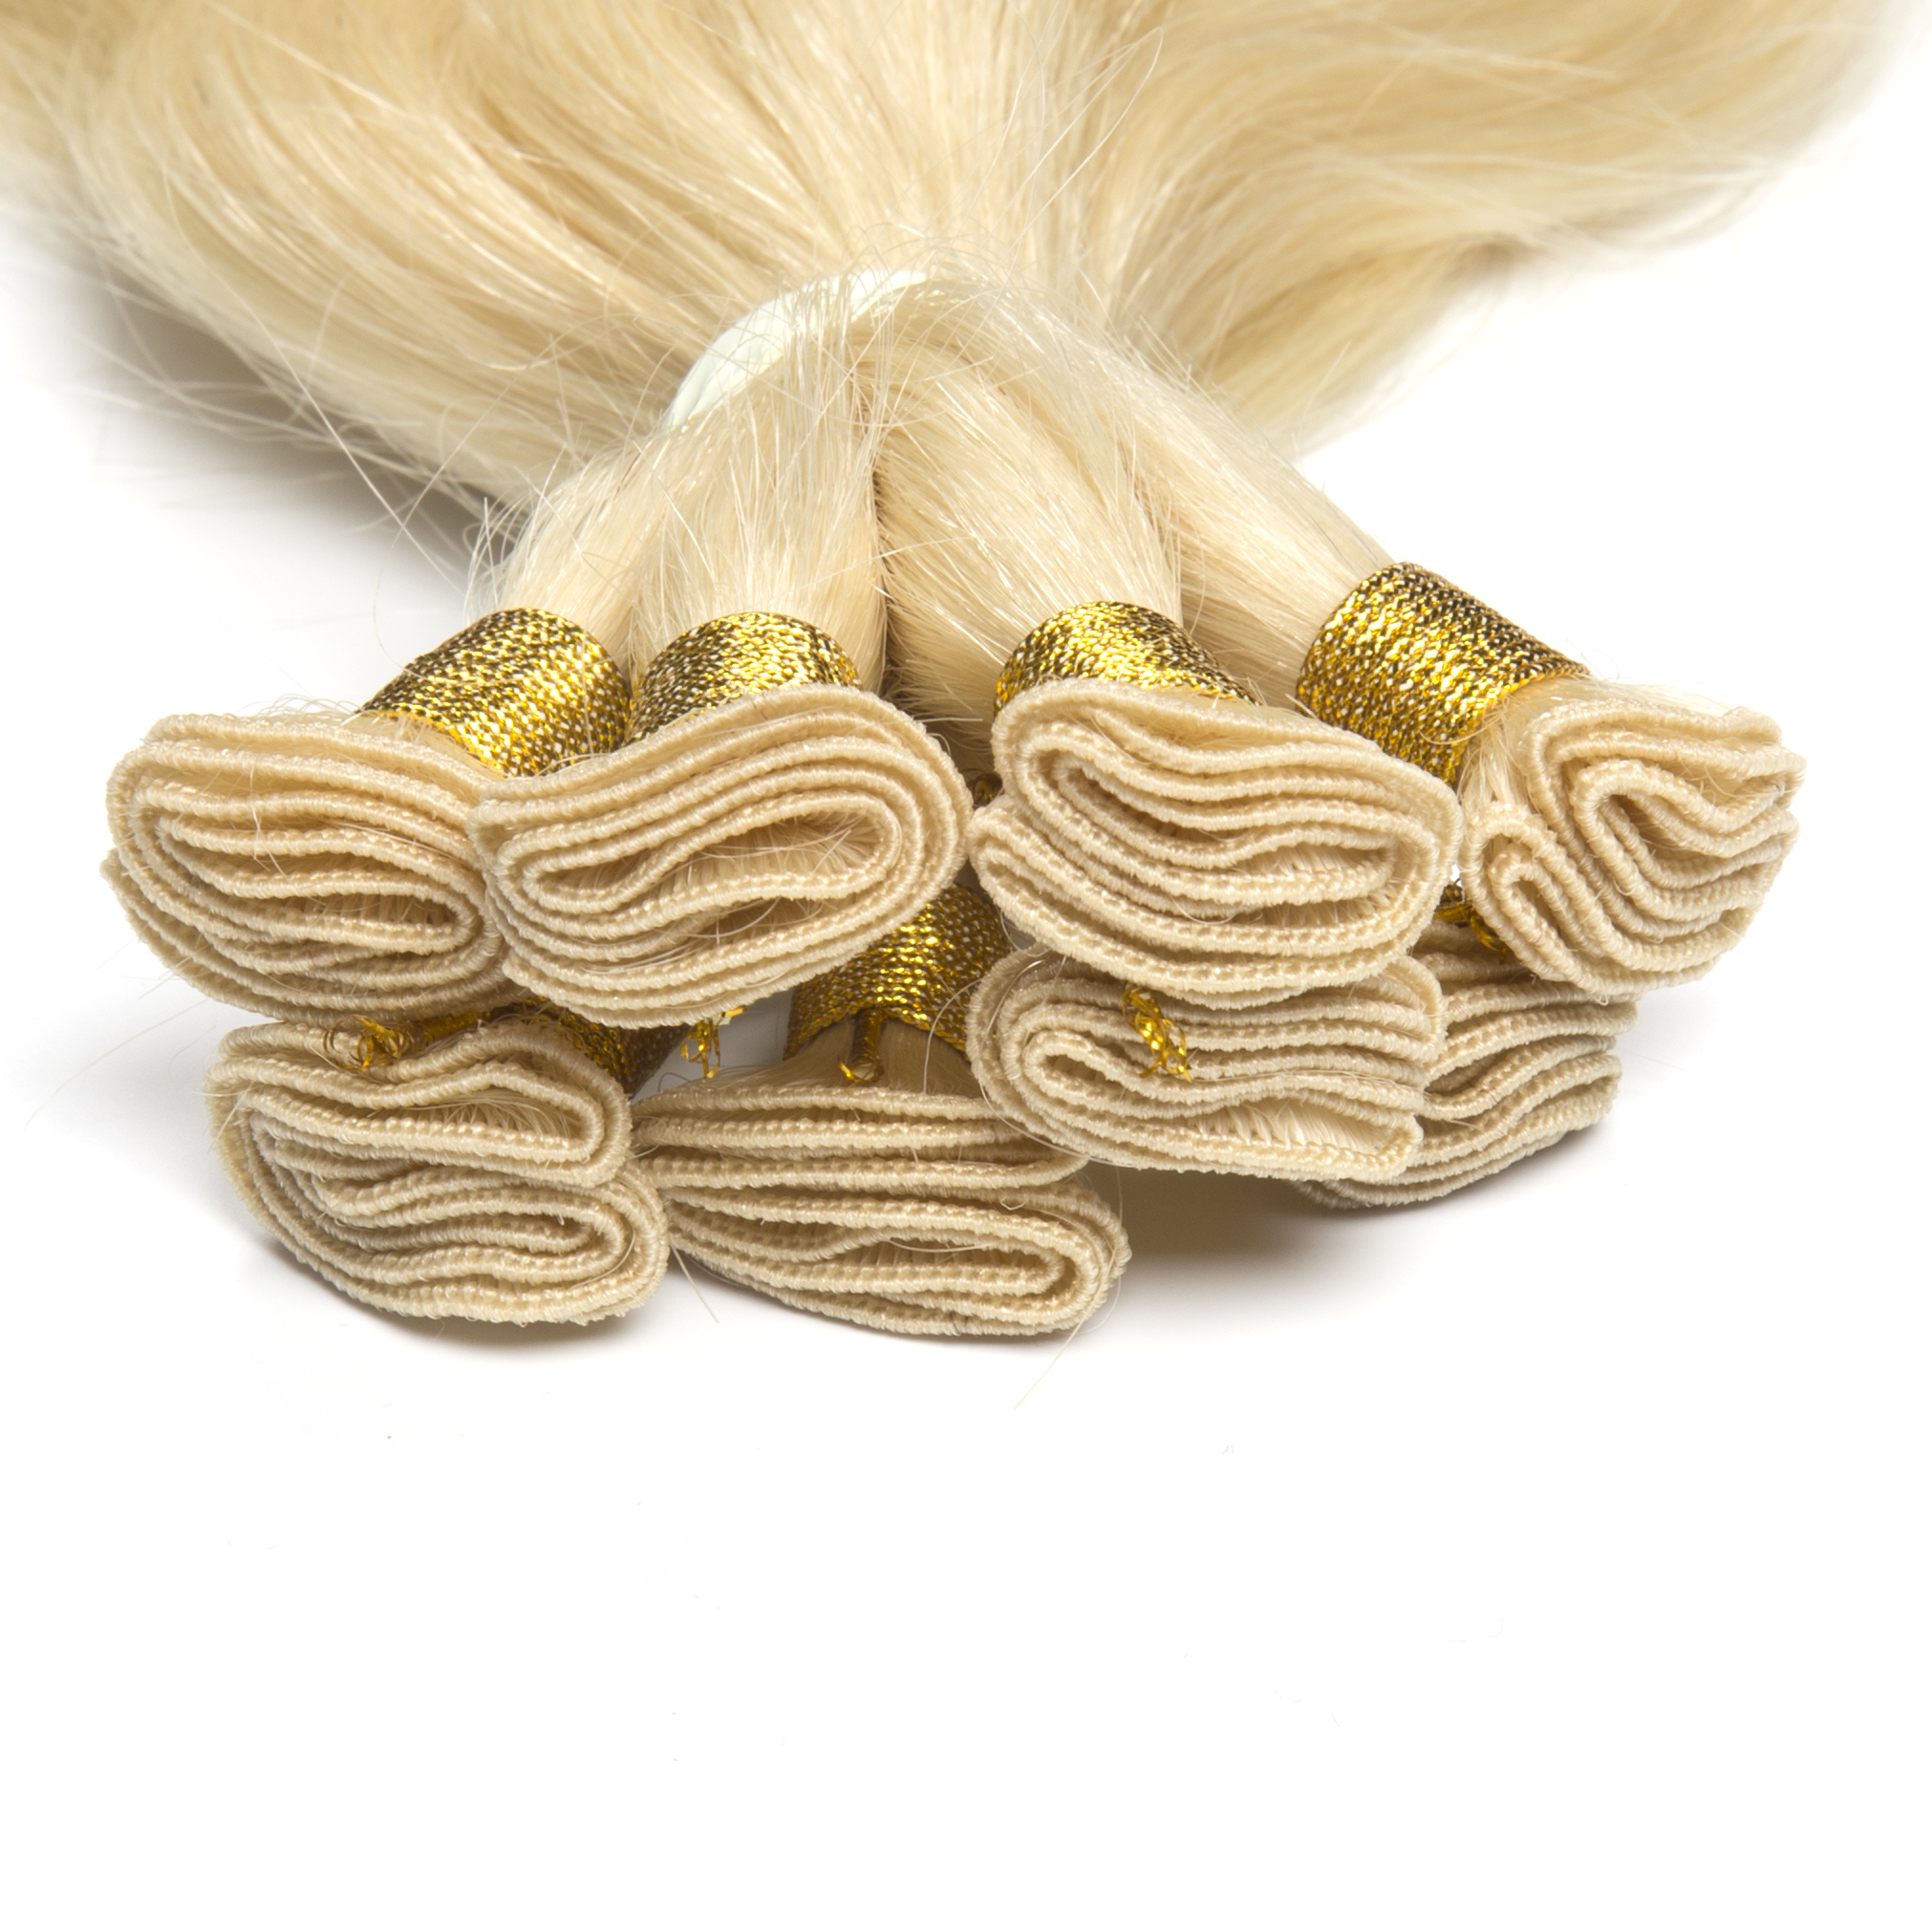 Hand-tied wefts are thinner, stronger and more comfortable to wear.